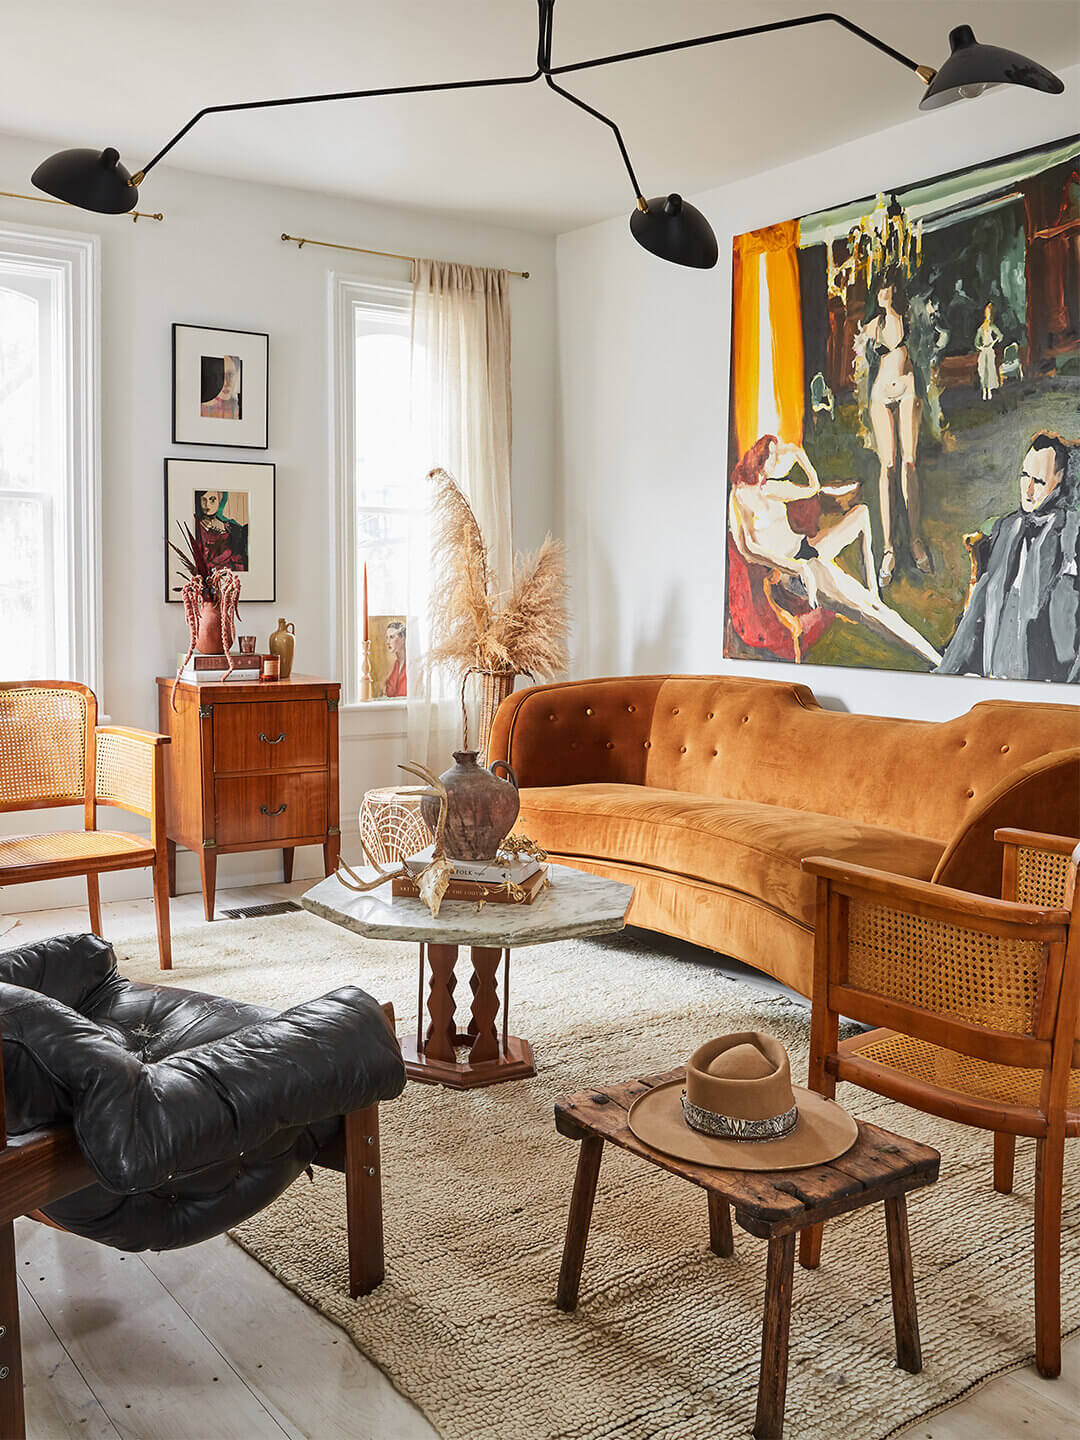 The 1920s Country House of Artist Christine Flynn